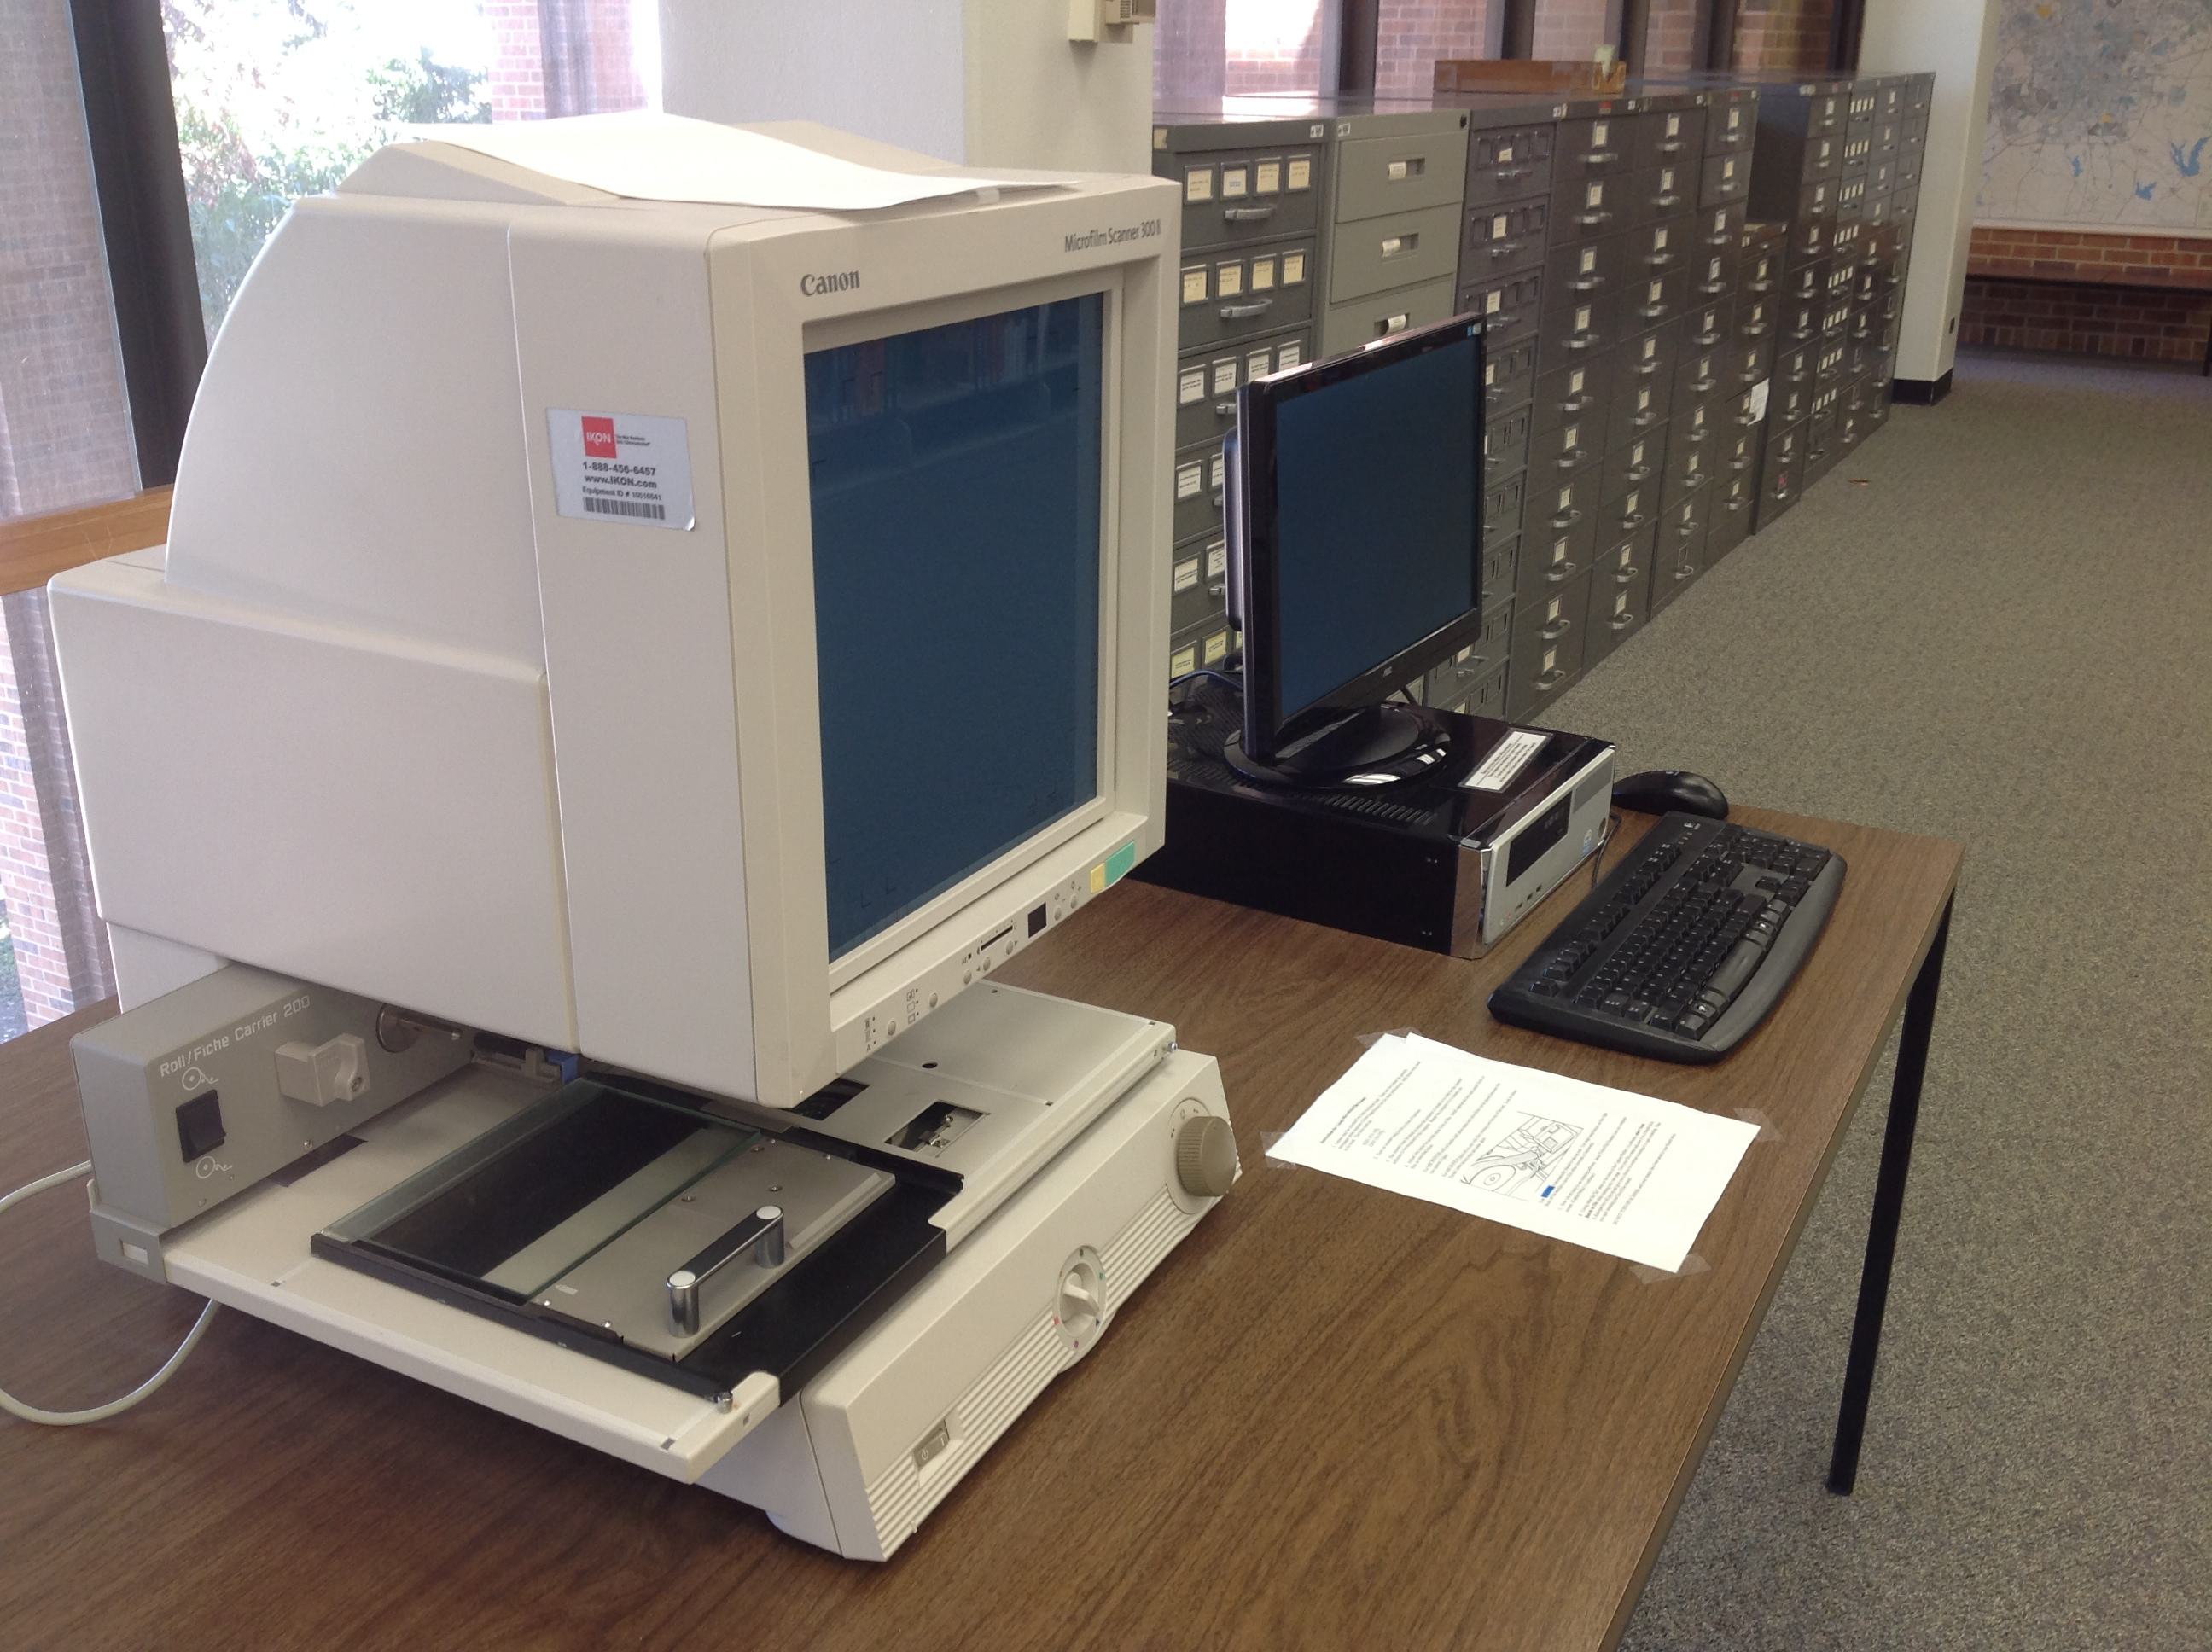 Microform reader/scanner